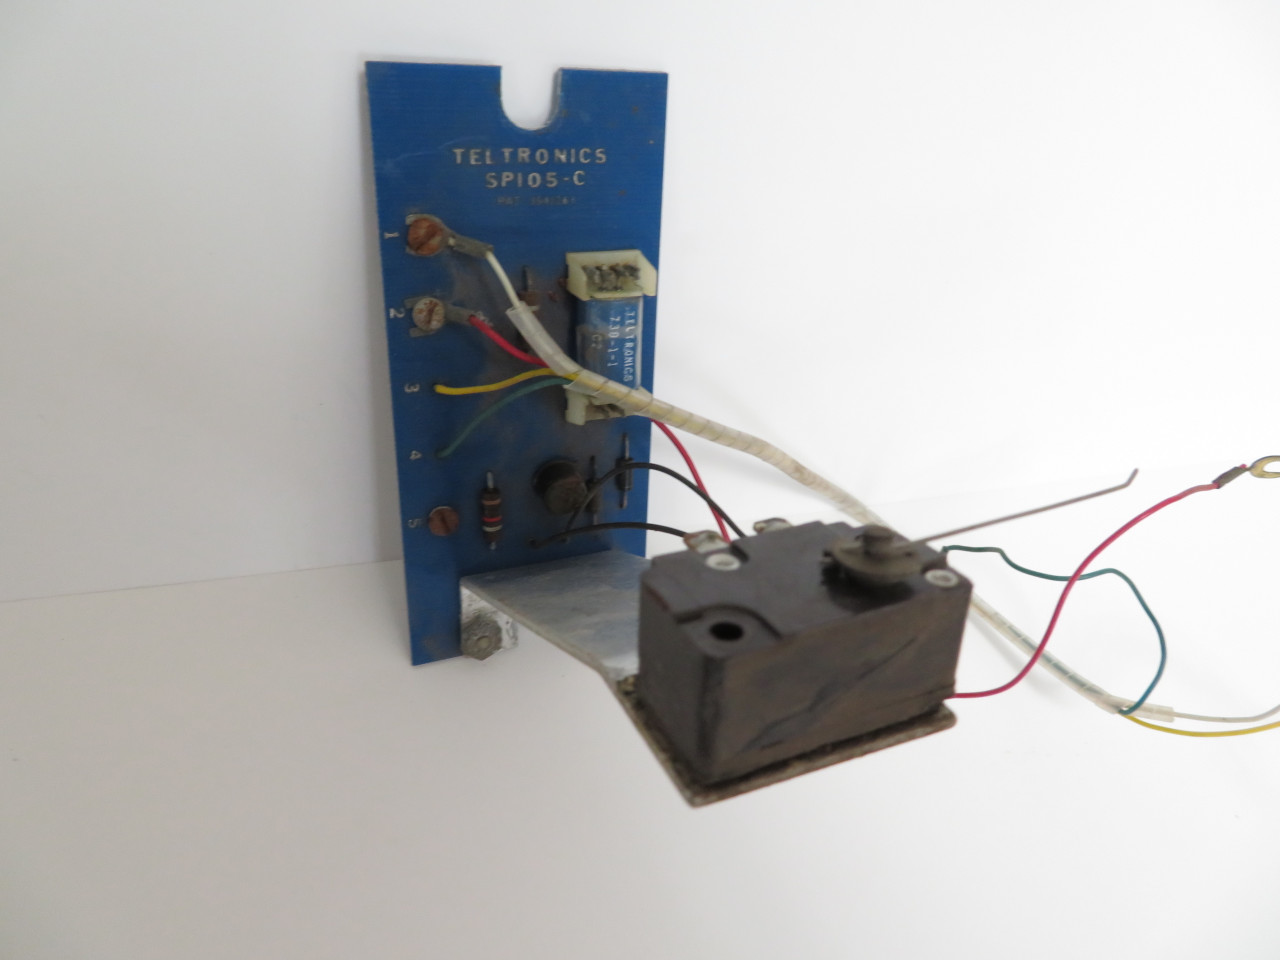 hight resolution of teltronics sp 105 coin relay 3 slot payphone3 slot payphone image 1 loading zoom